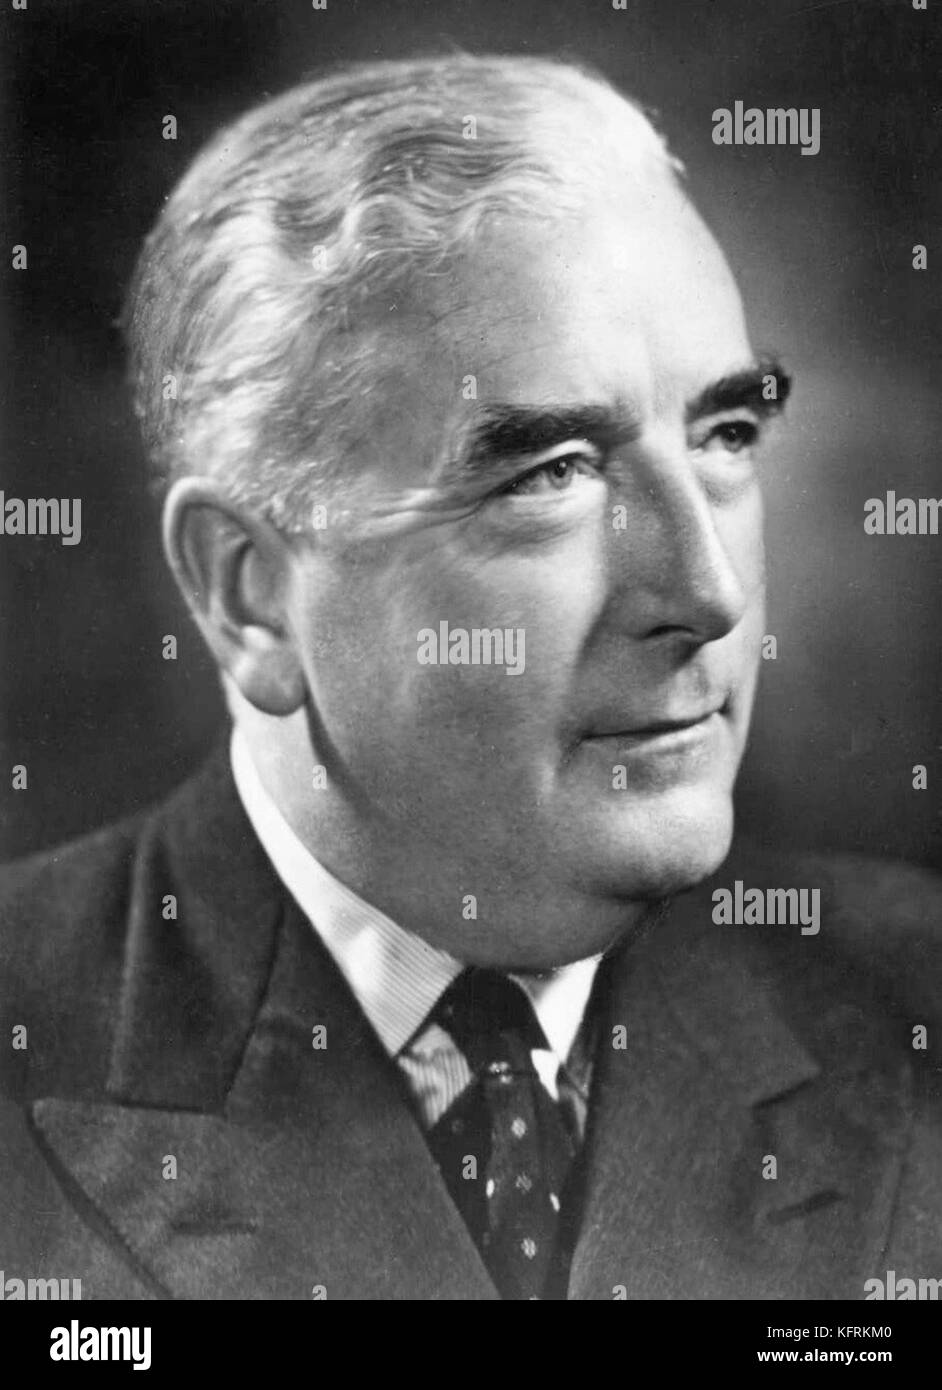 Sir Robert Gordon Menzies, (20 December 1894 – 15 May 1978), Prime Minister of Australia from 1939 to 1941 and again - Stock Image